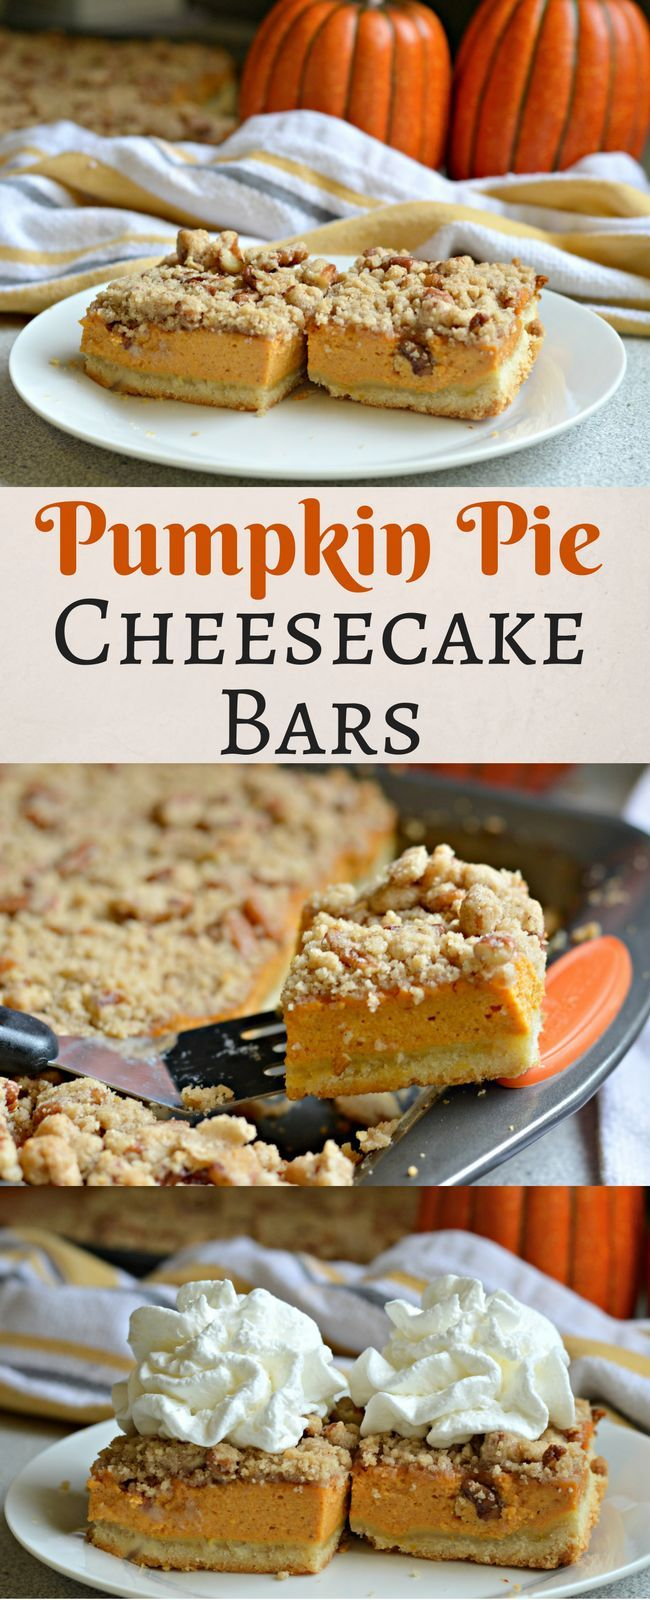 ... Cobbler's on Pinterest | Cheesecake recipes, Cream pies and Cheesecake